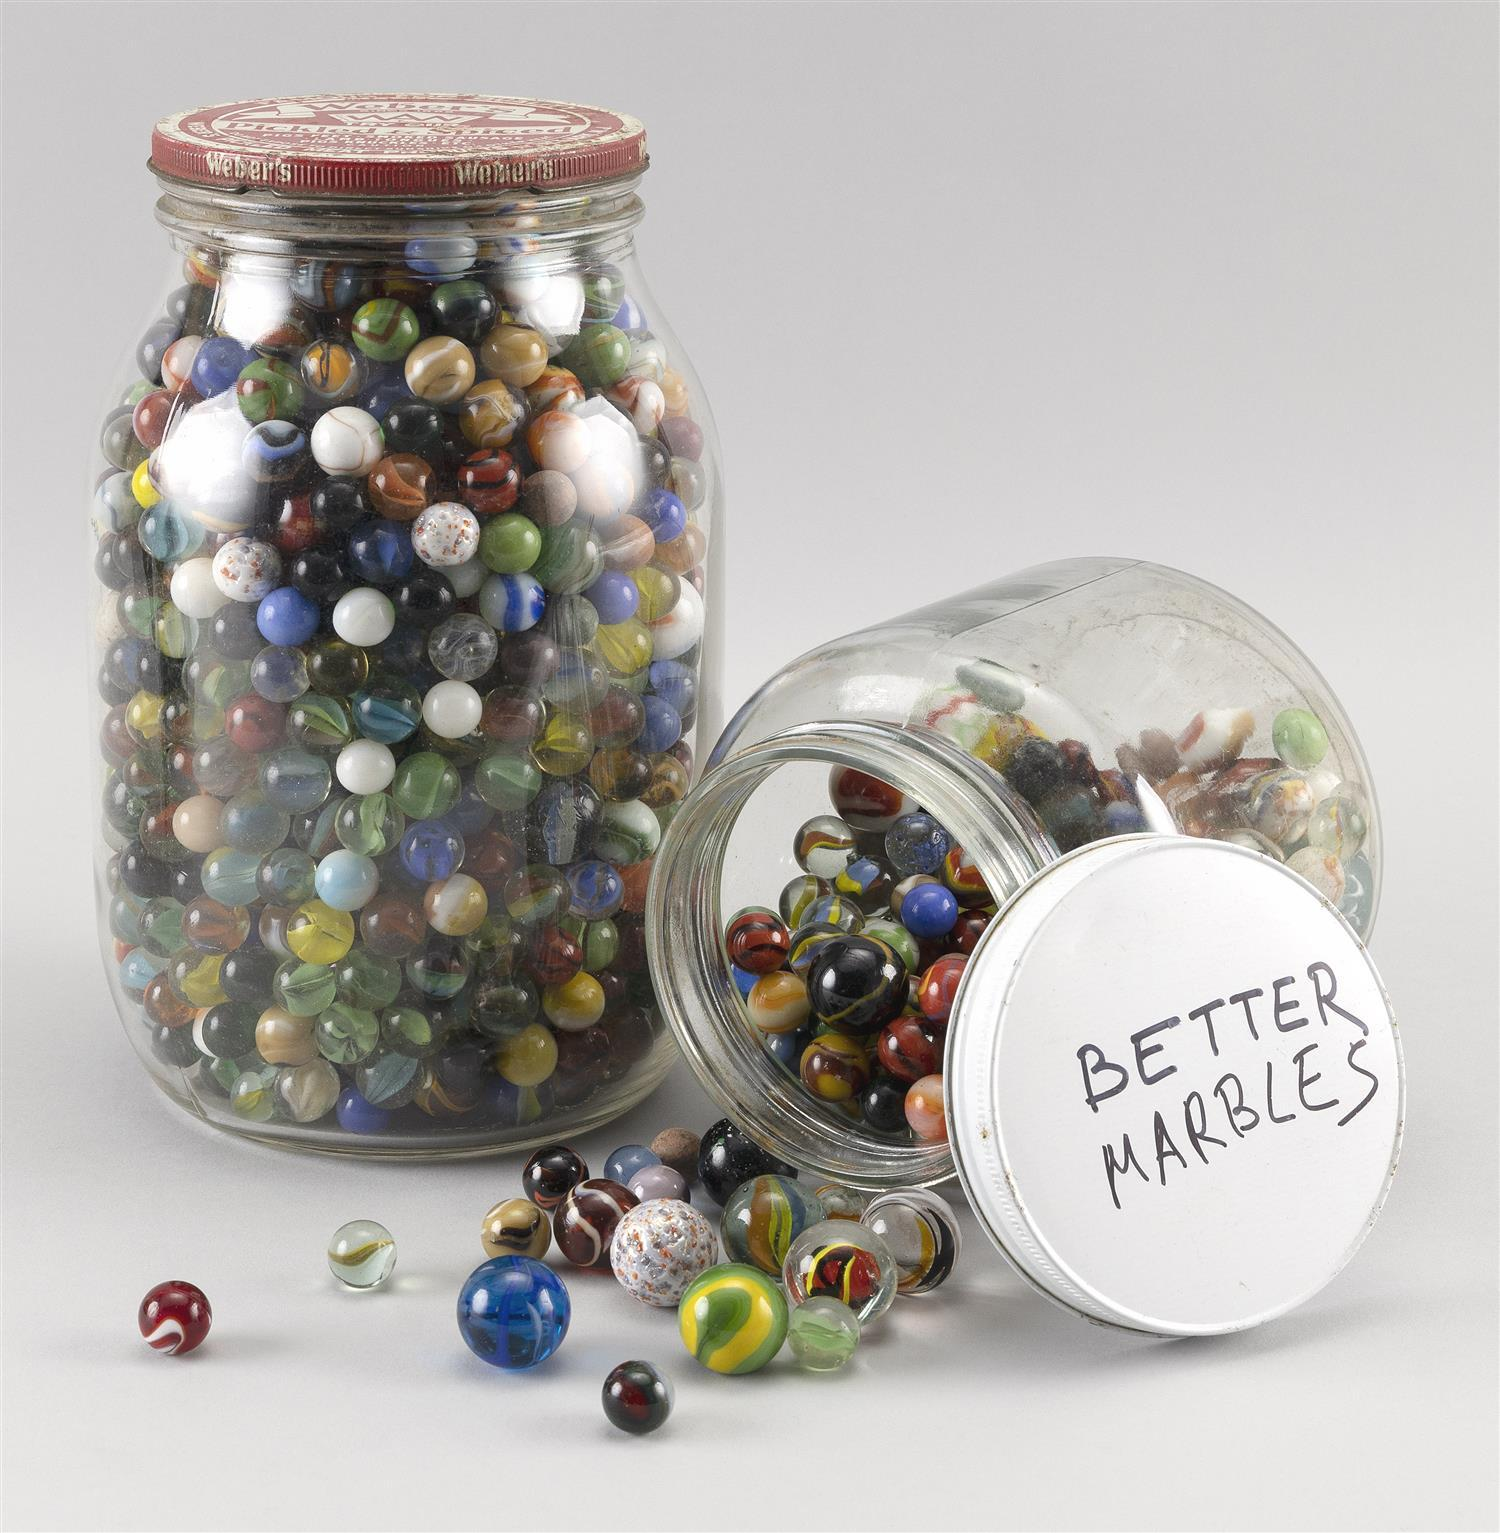 TWO PICKLE JARS CONTAINING MARBLES Mostly glass marbles but includes a few clay varieties. Various sizes and patterns. Jar heights 6...